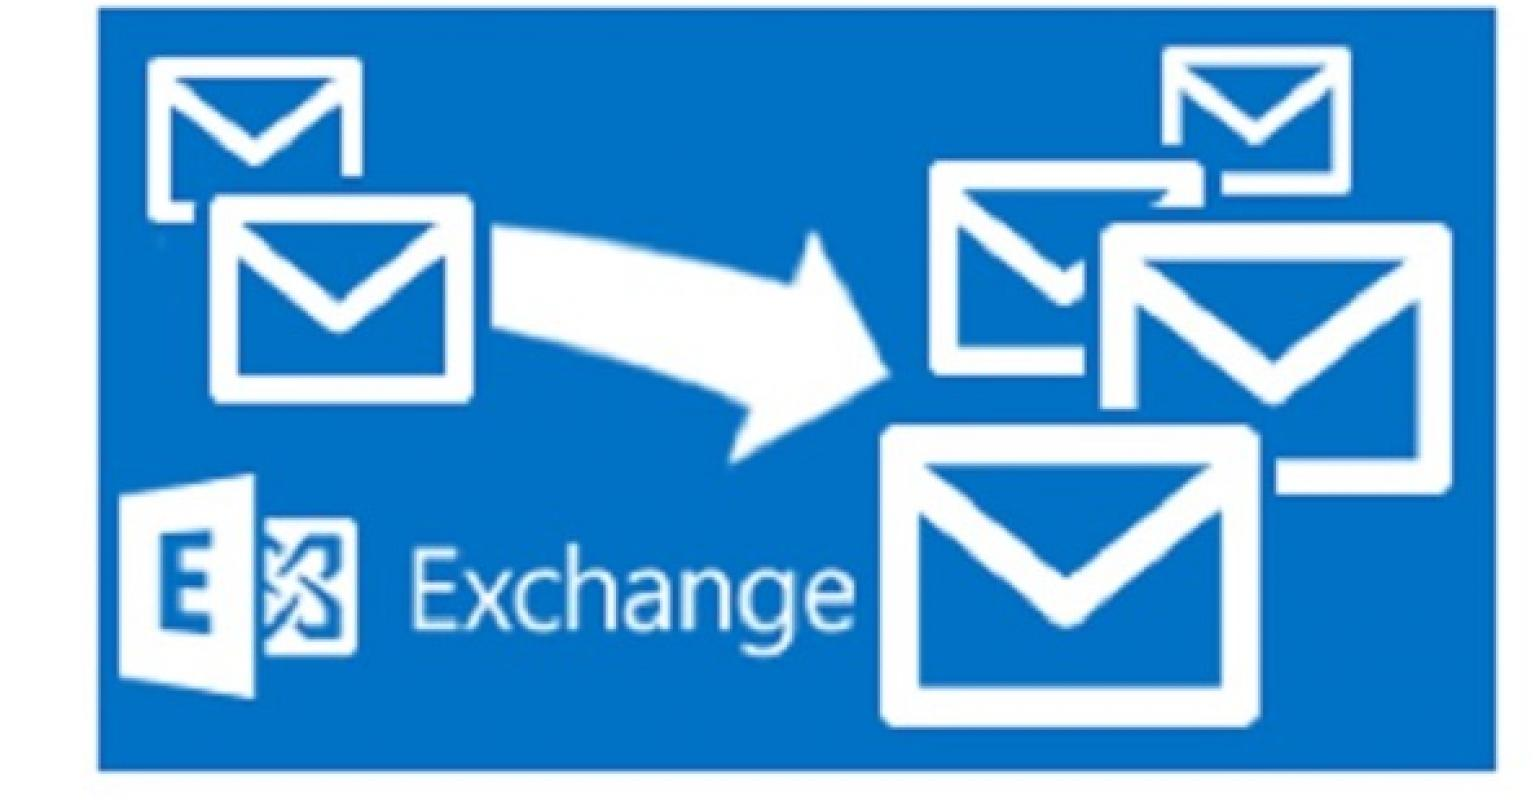 Exchange 2013 SP1: New and Completed Features | IT Pro